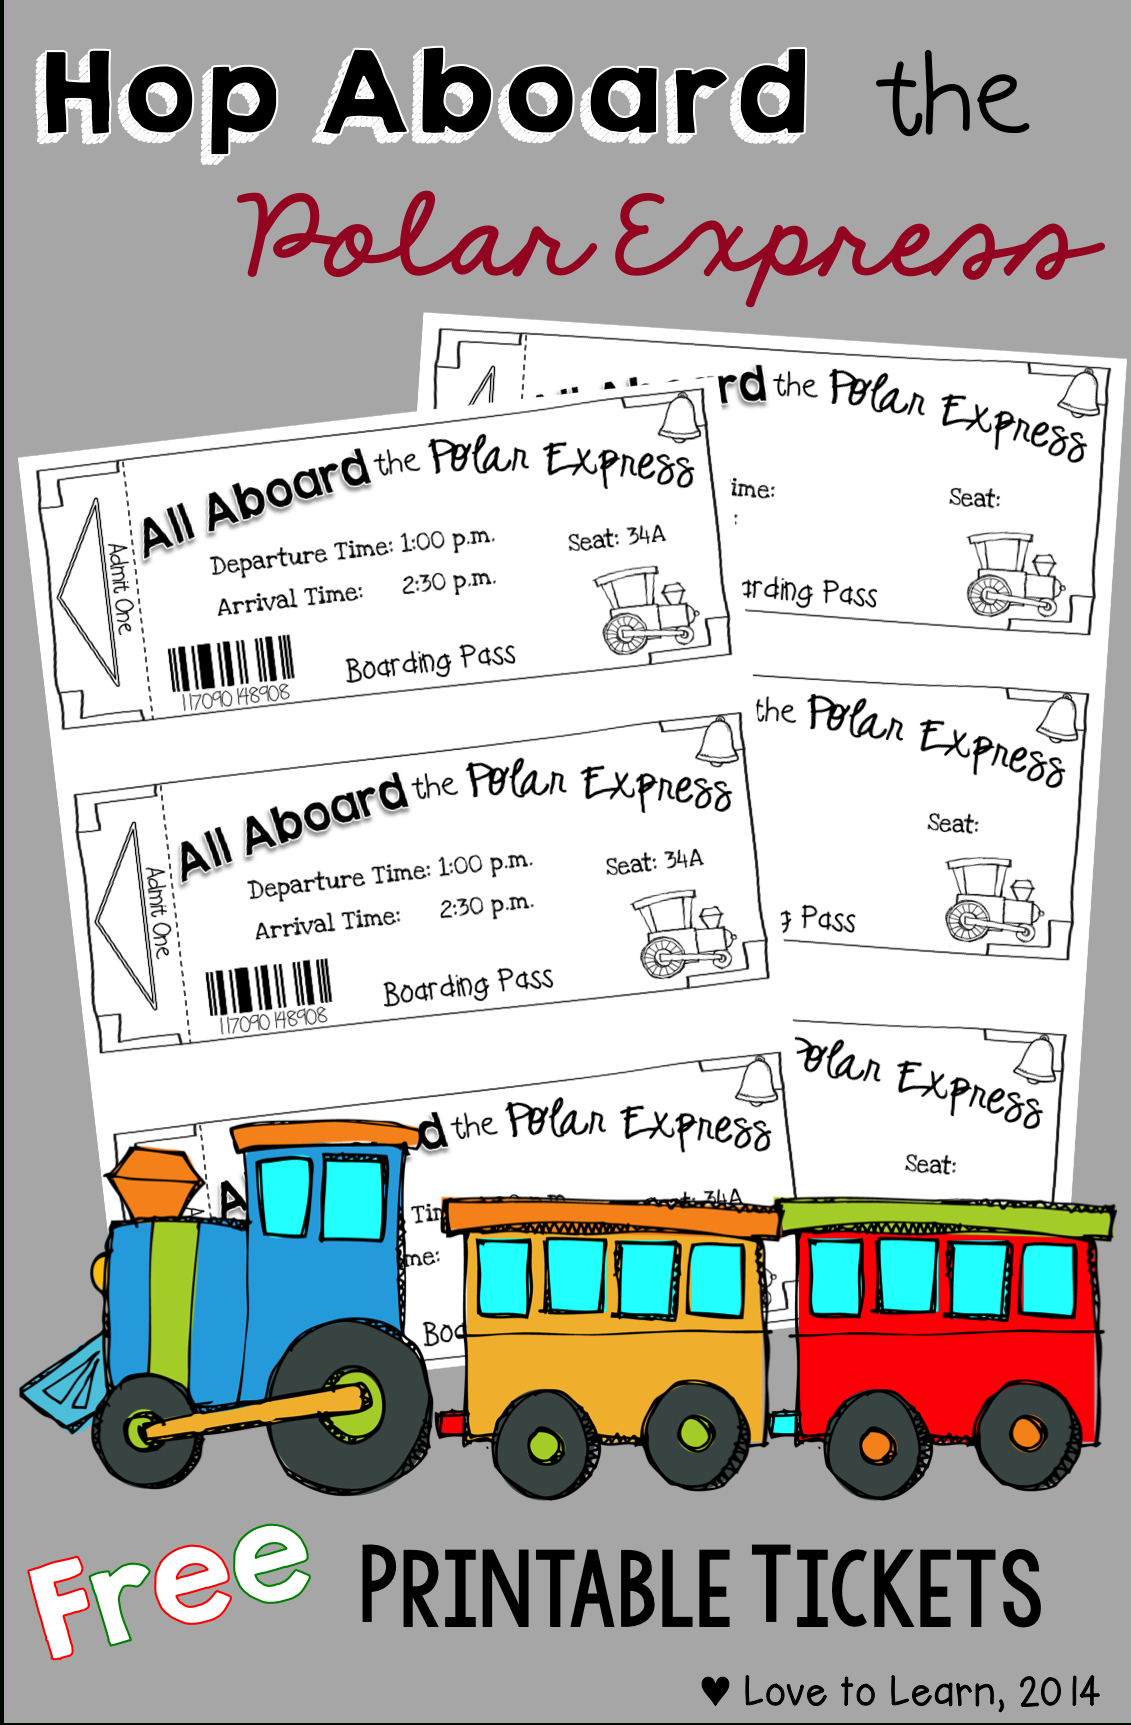 Hop Aboard The Polar Express With These Free Printable Tickets - Free Polar Express Printable Tickets